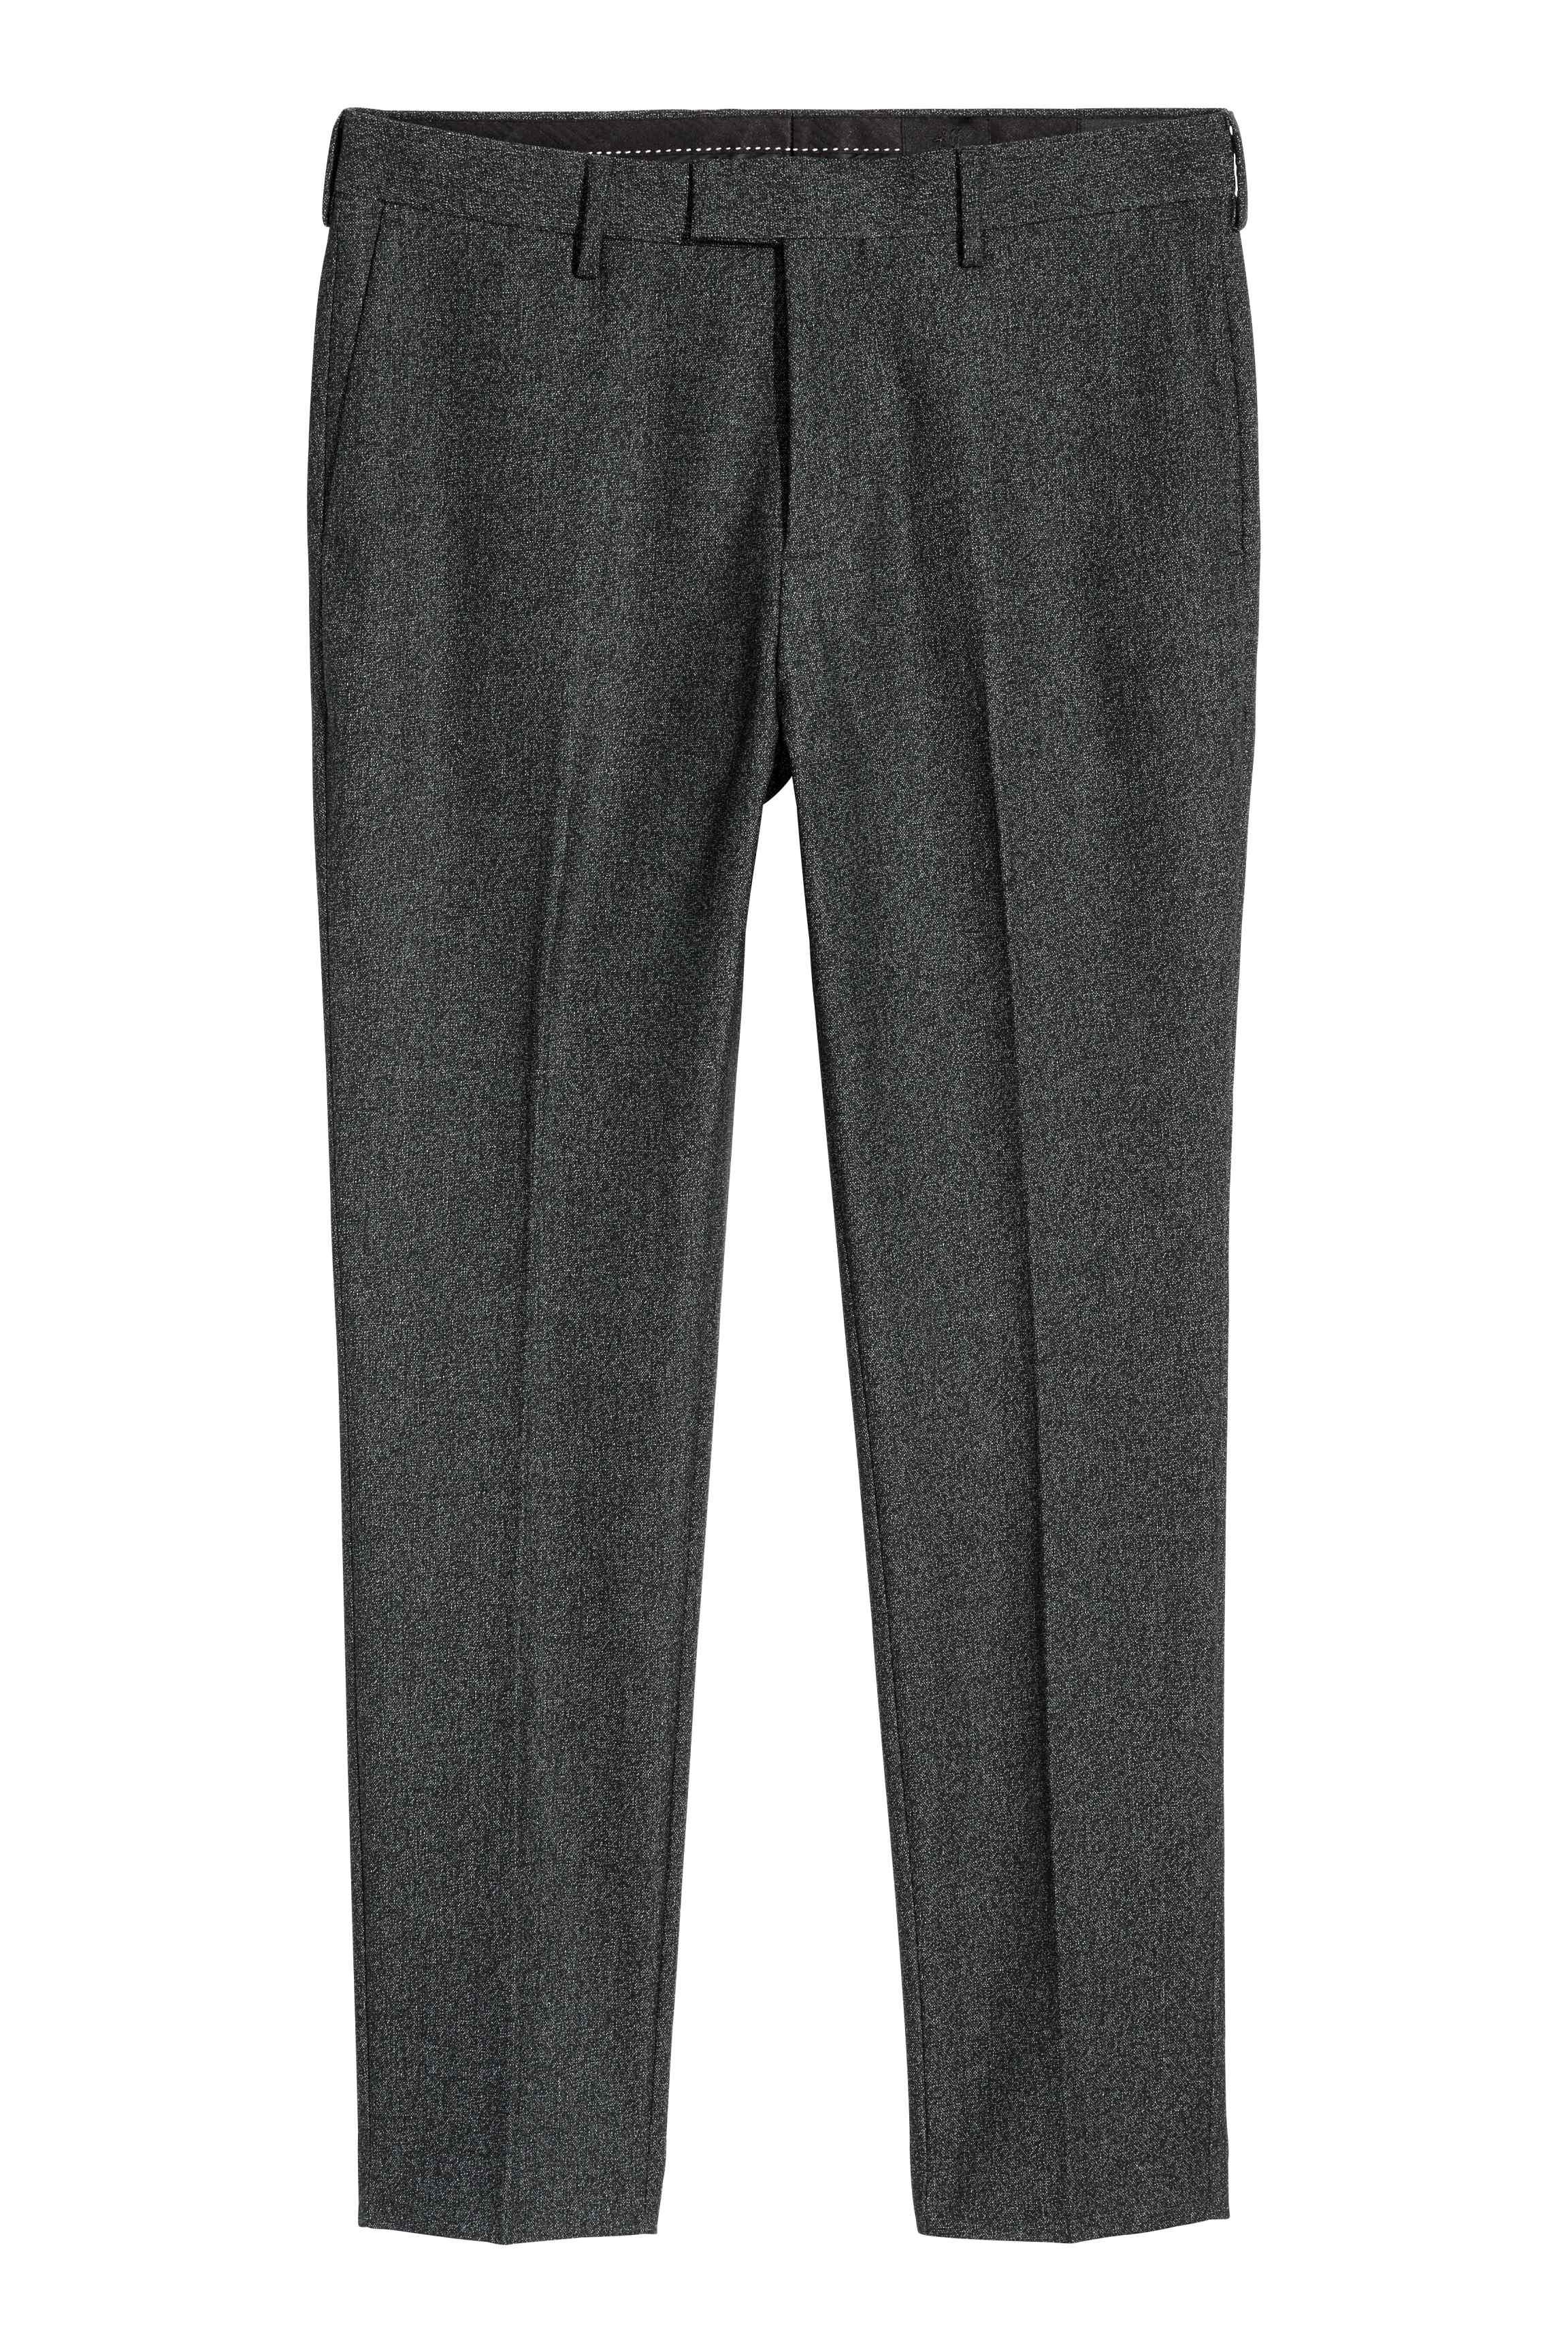 H&M Synthetic Suit Trousers Skinny Fit in Dark Grey Marl (Grey) for Men